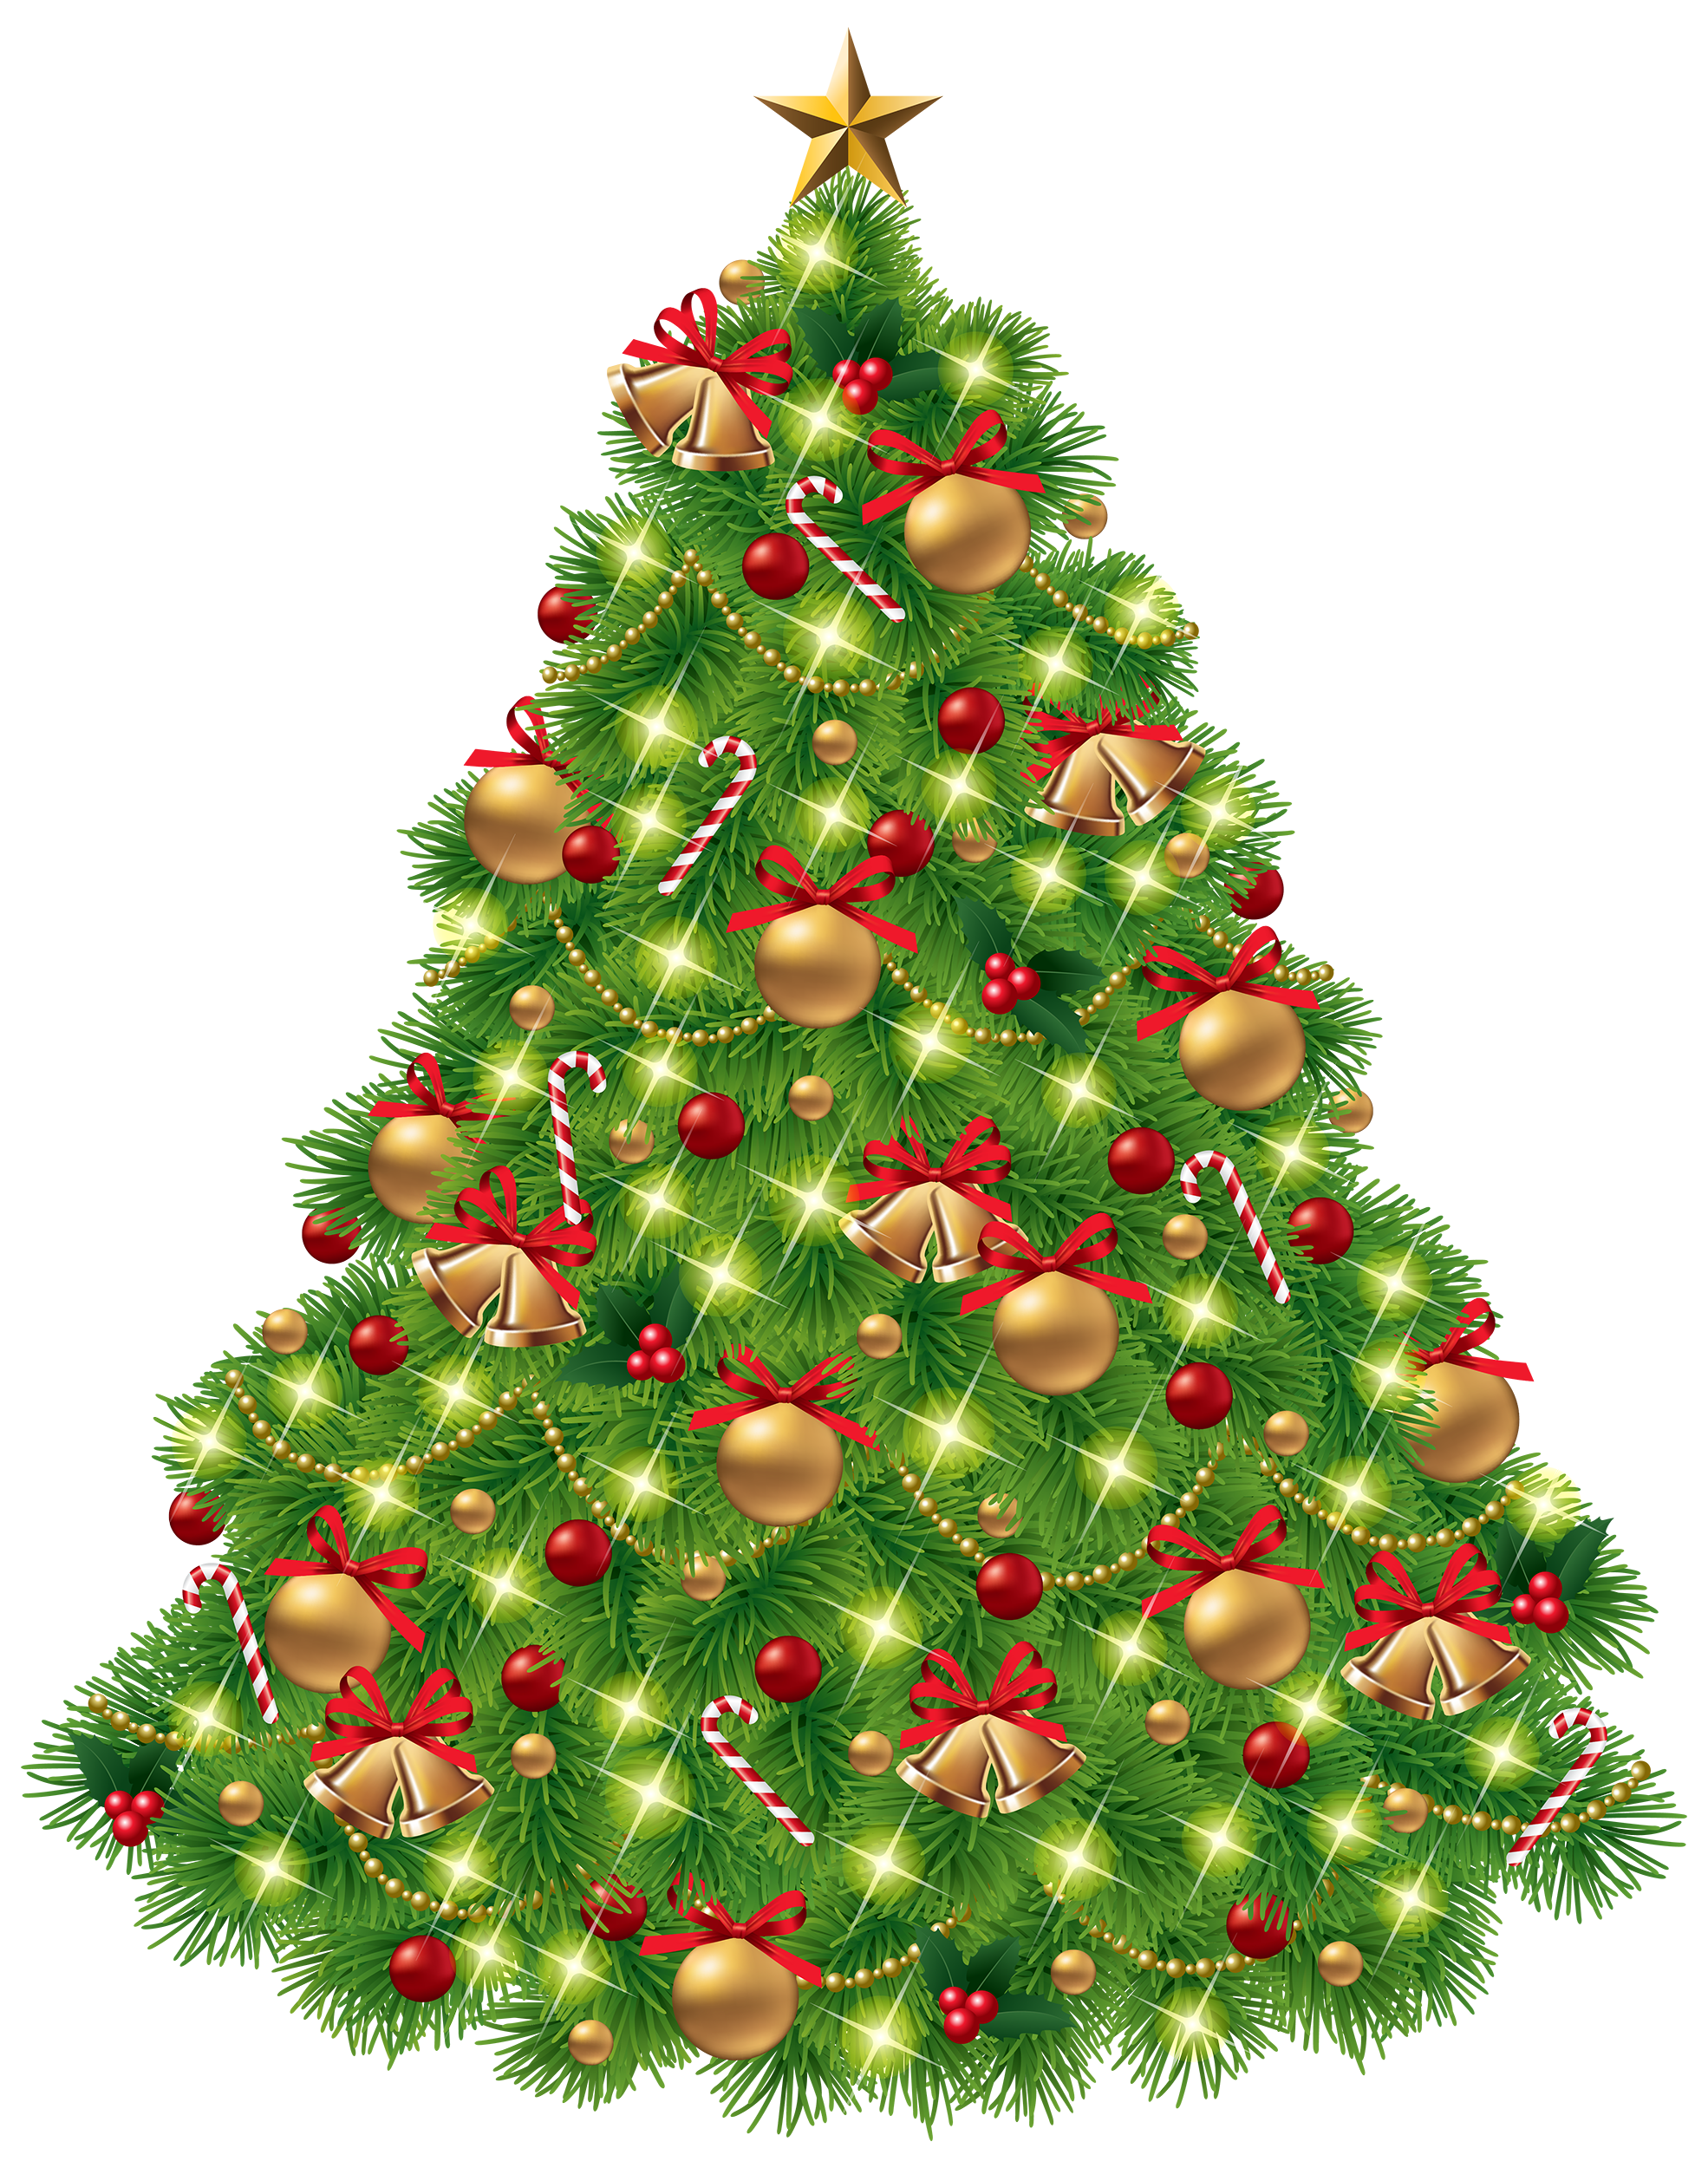 Chrismas tree clipart jpg black and white download Christmas Tree PNG Clipart - Best WEB Clipart jpg black and white download